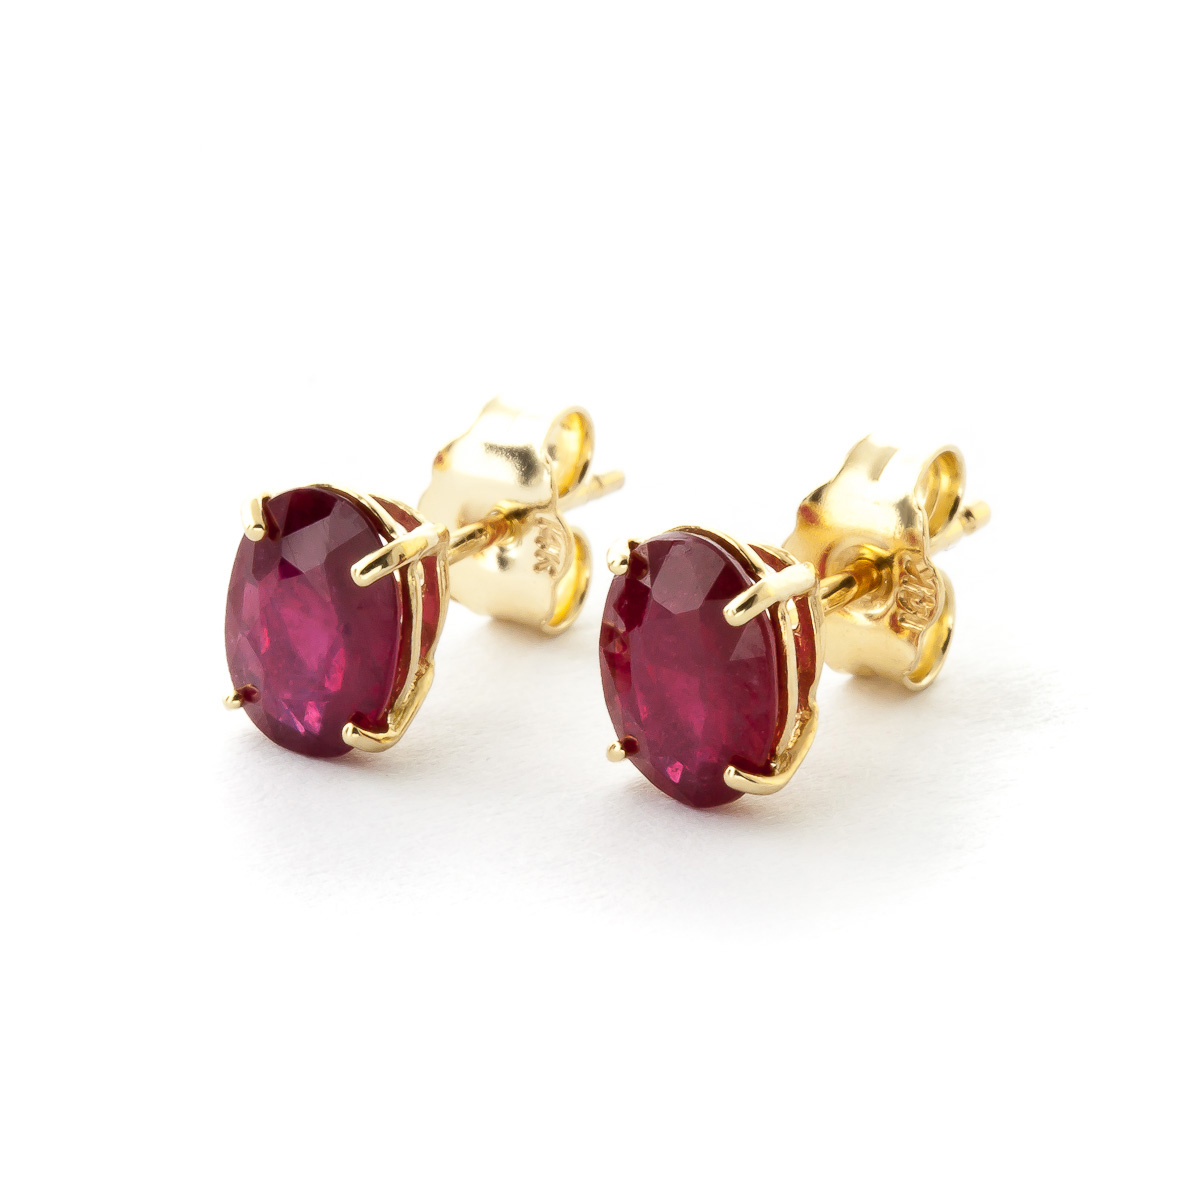 Ruby Stud Earrings 1.8 ctw in 9ct Gold